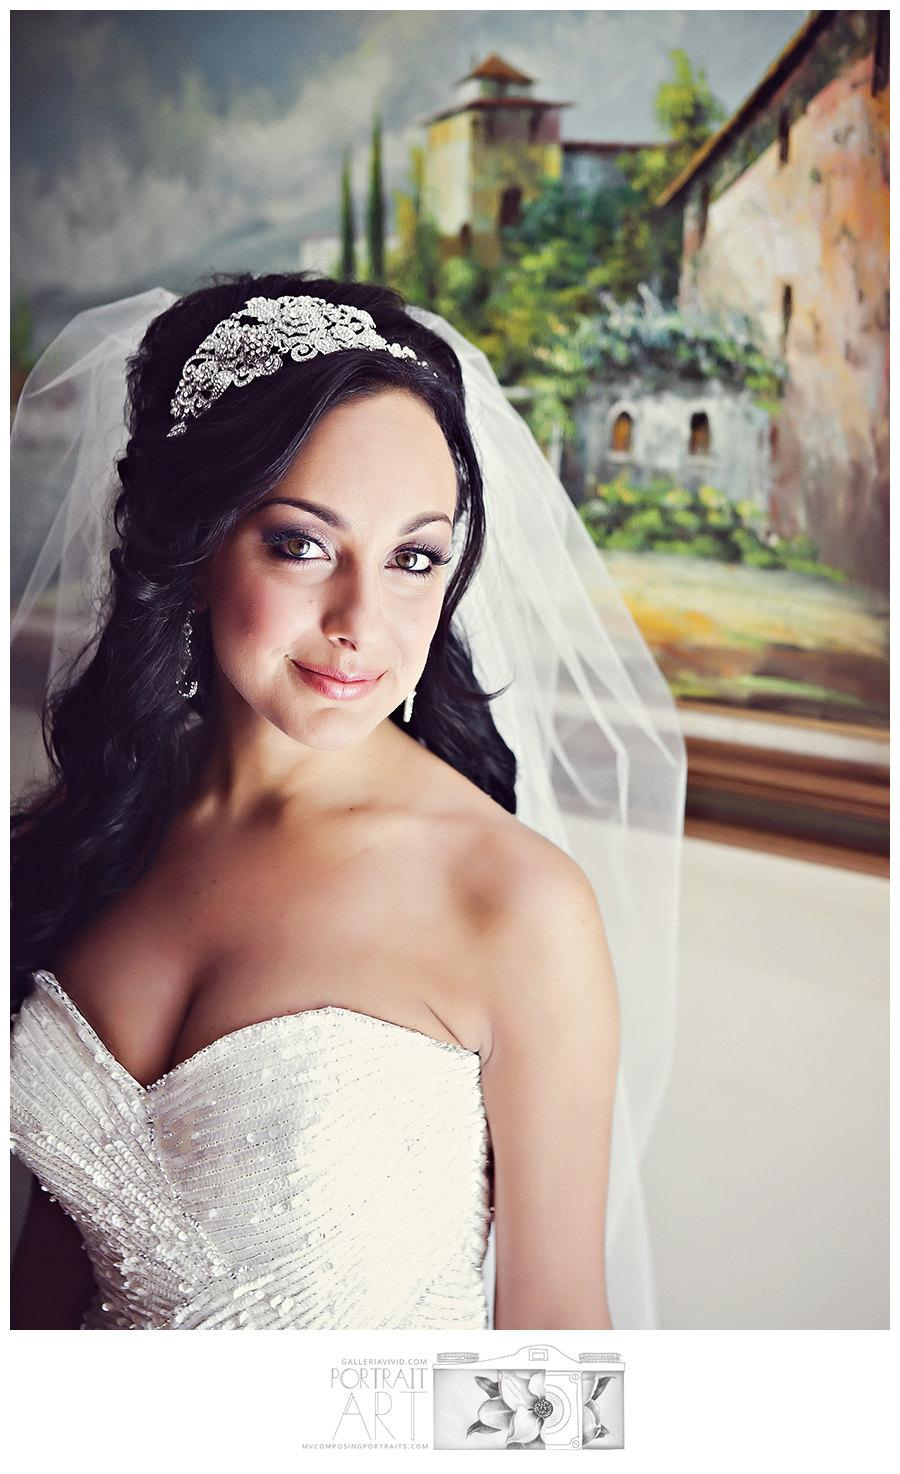 Wedding - Romance Swarovski crystal bridal headband